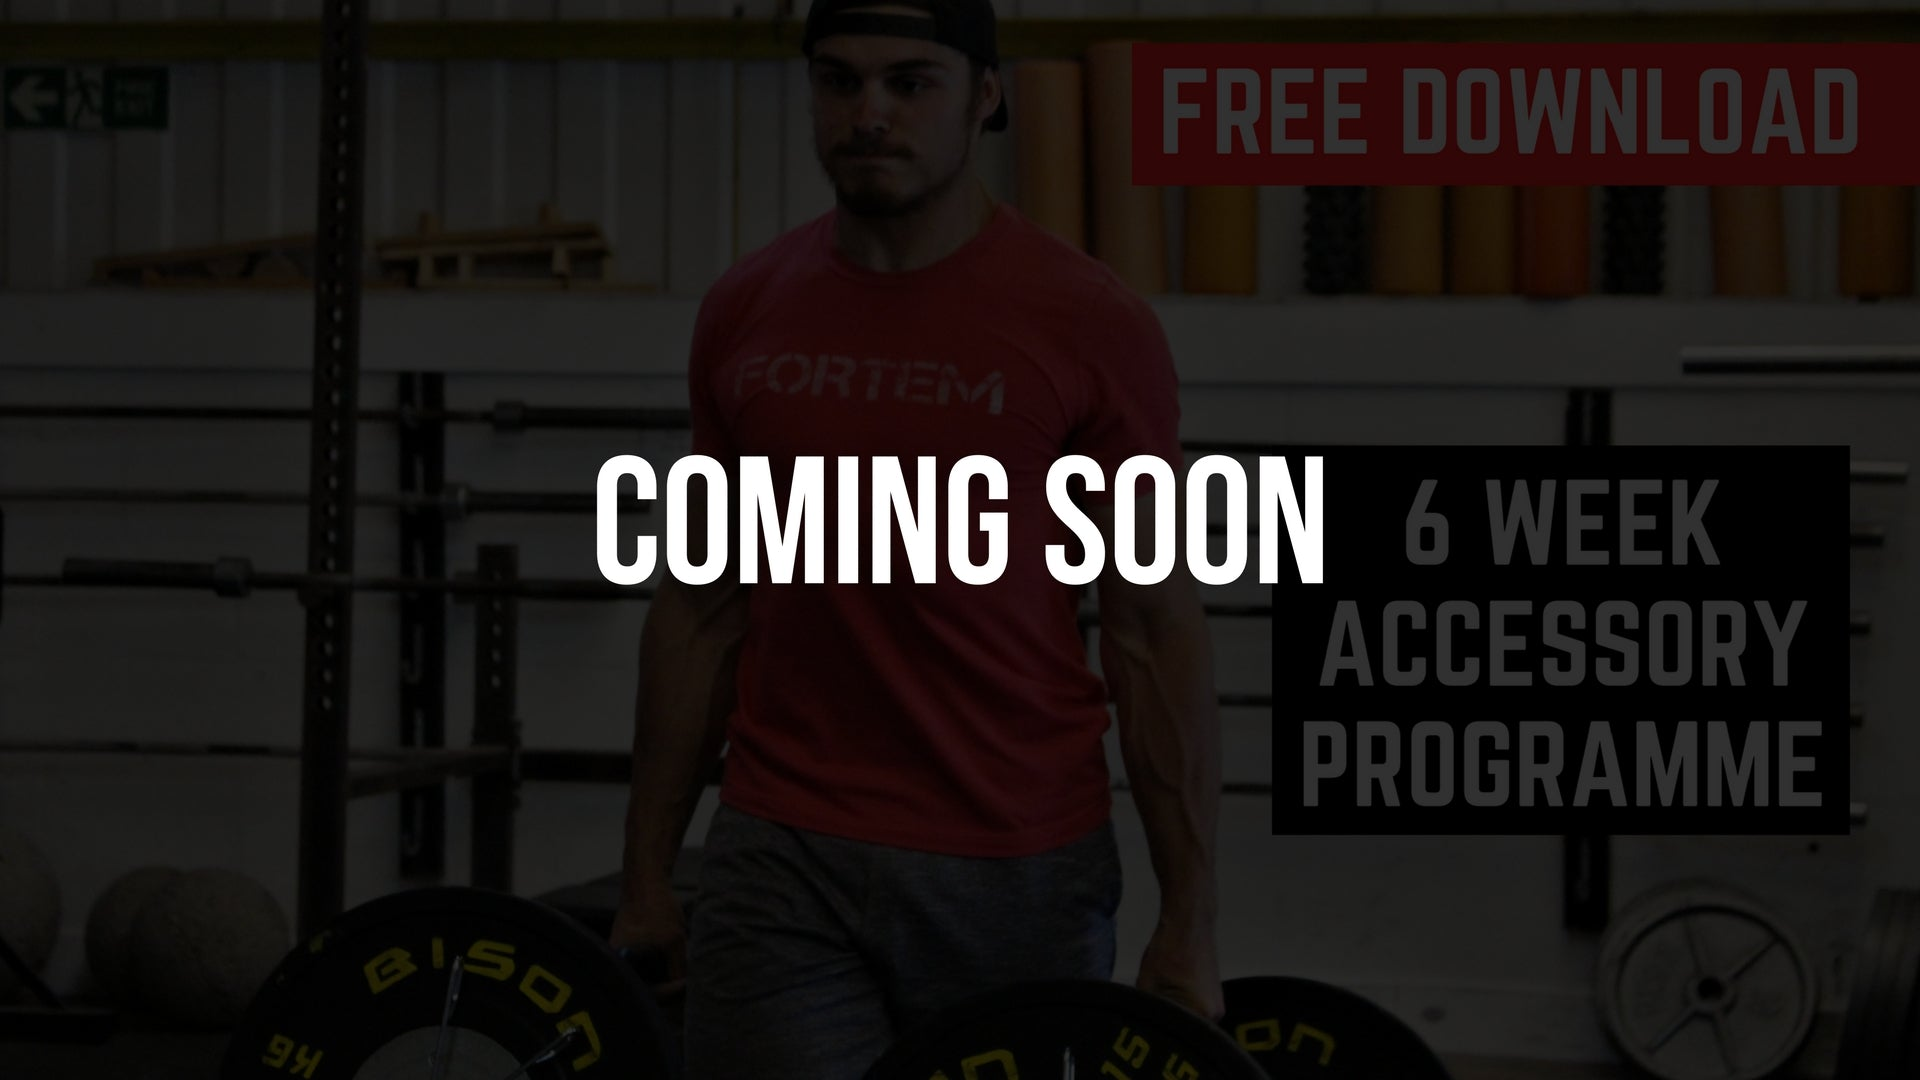 Fortem Training Free 6 Week CrossFit Accessory Movement Programme